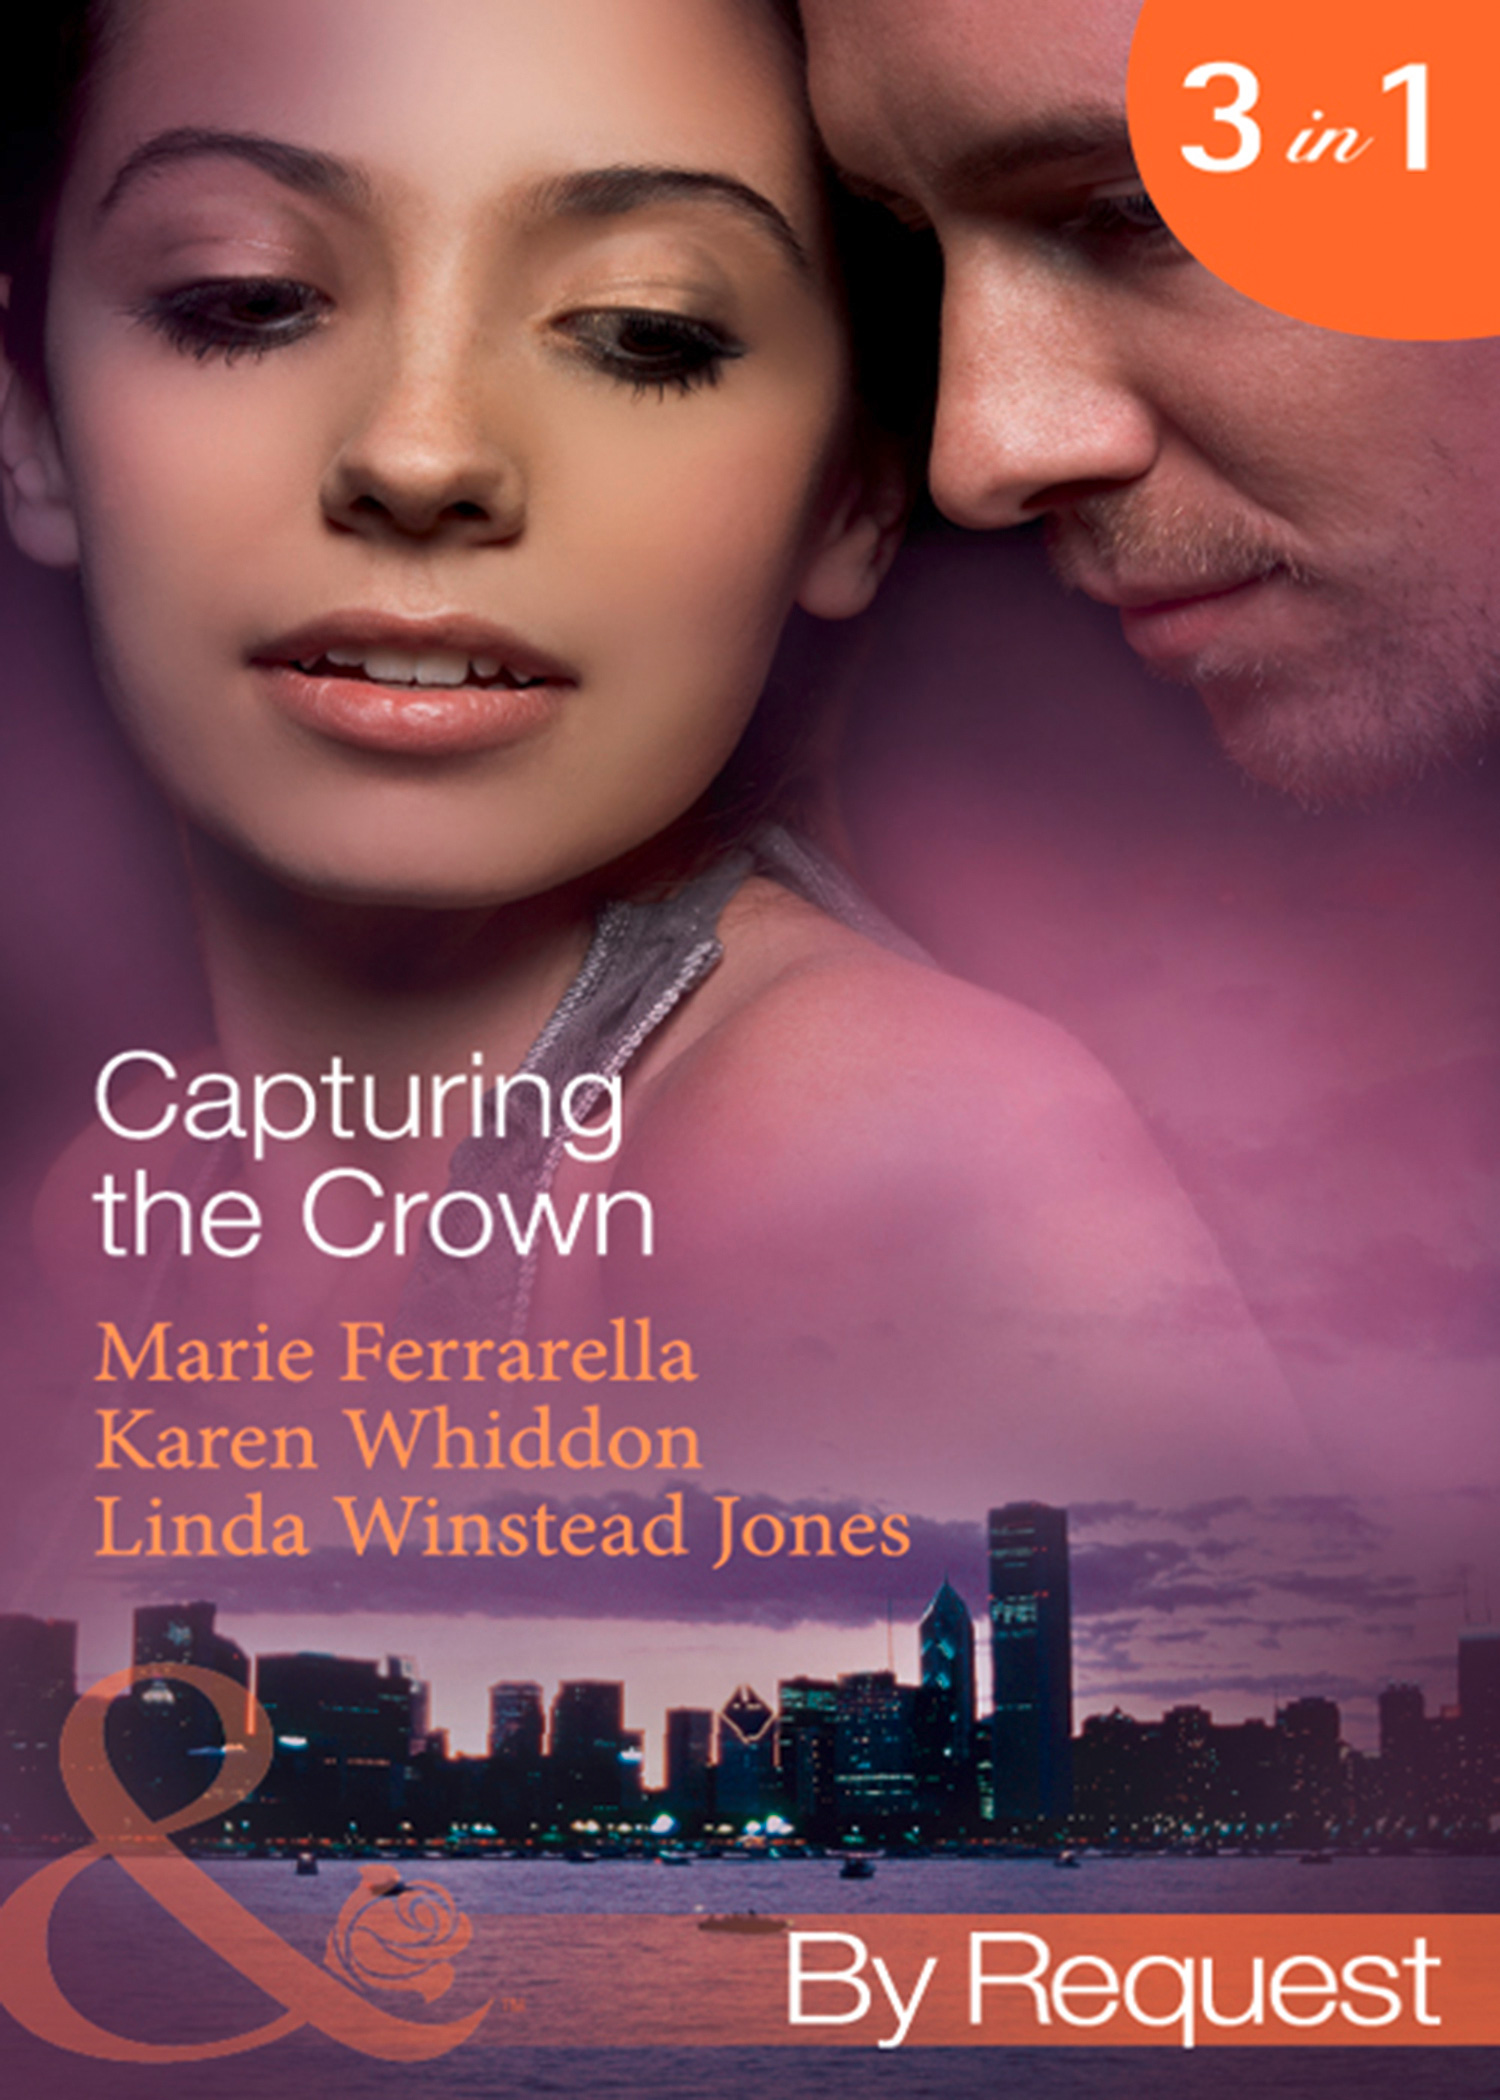 Capturing the Crown